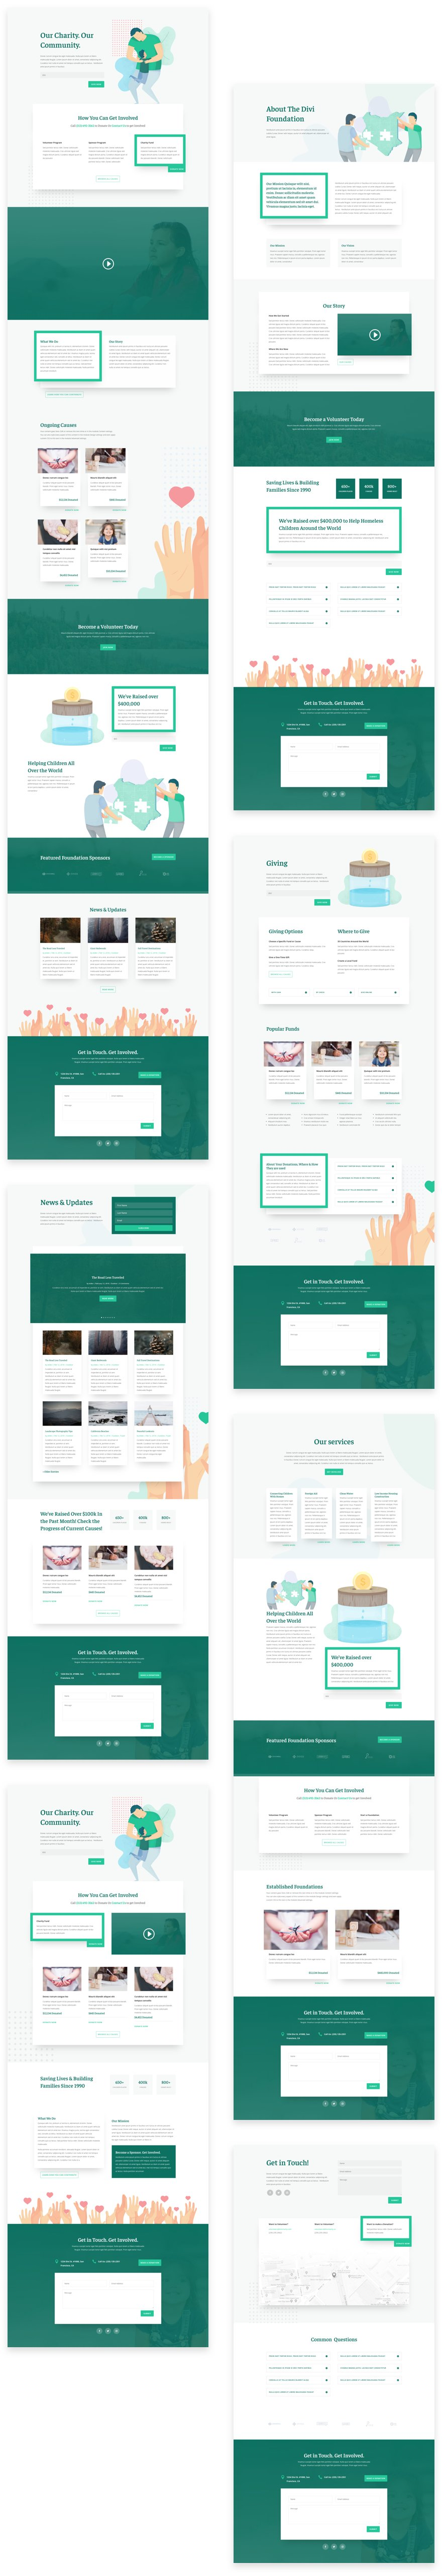 divi charity layout pack